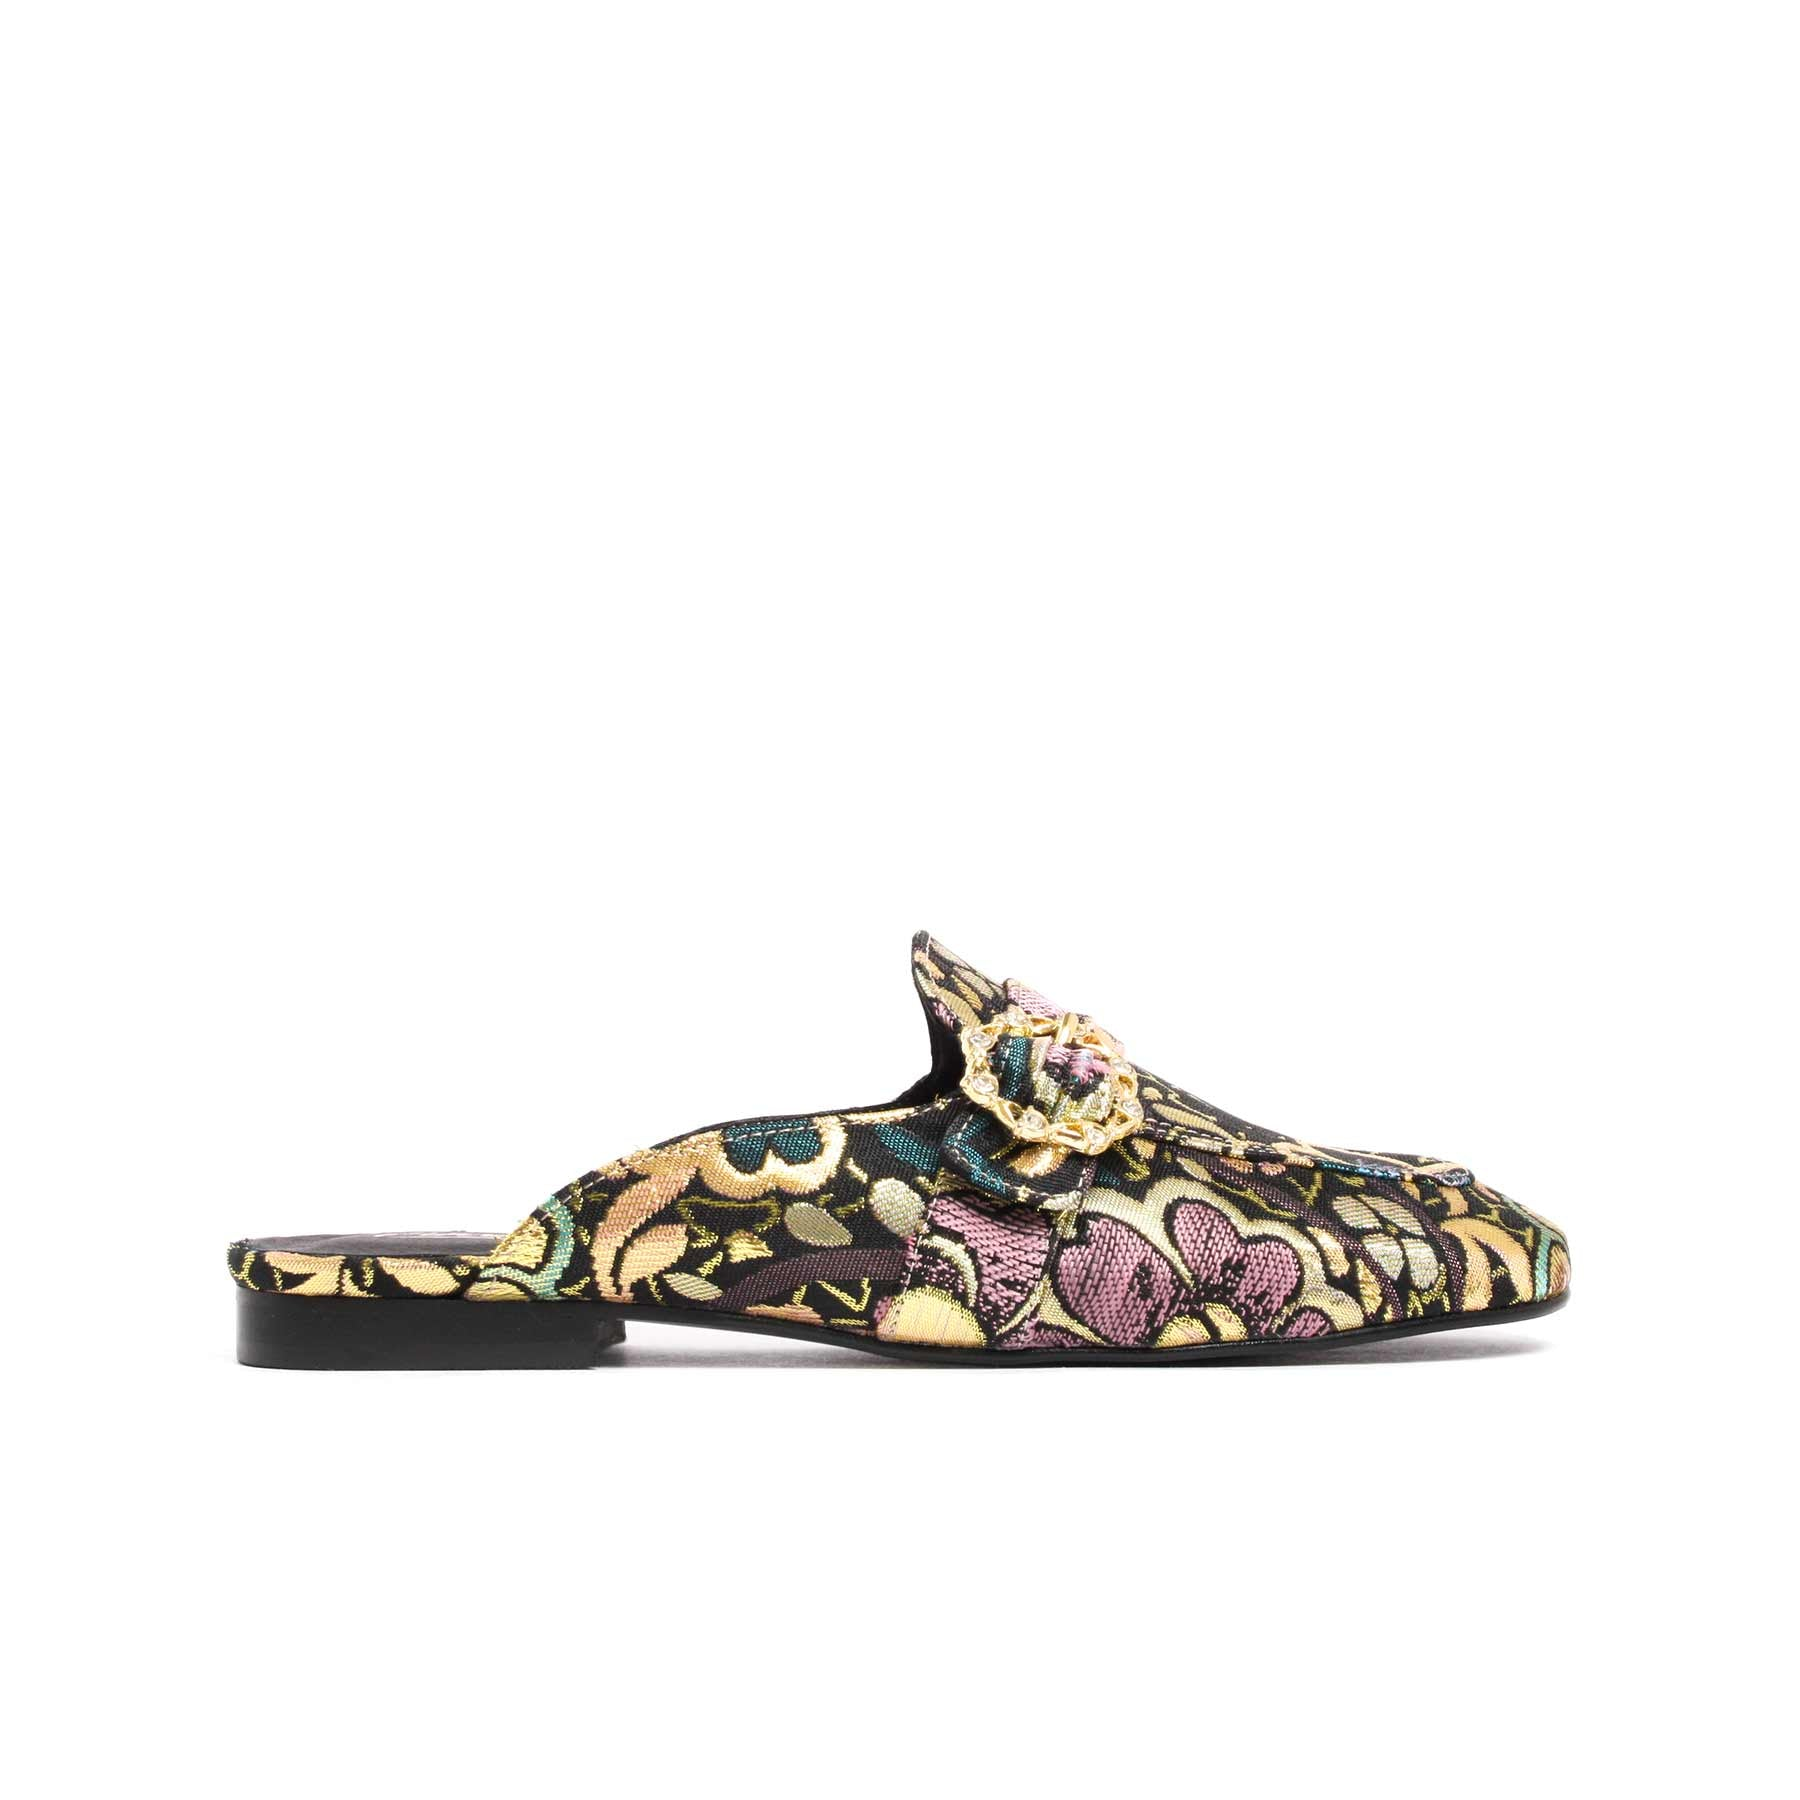 Shoes, Curu Green Brocade - Lintervalle shoes for woman